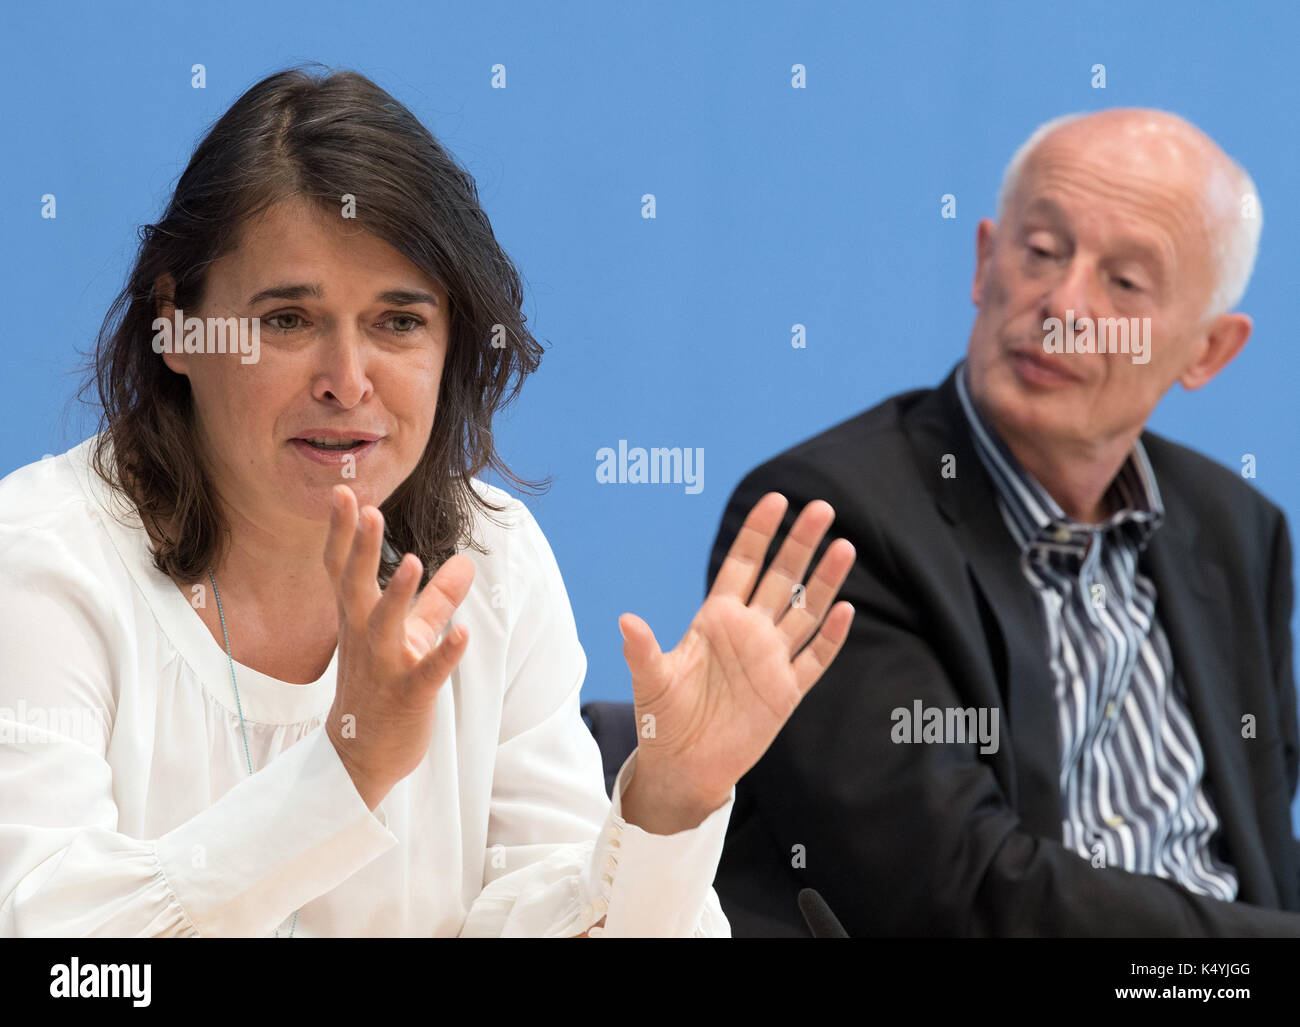 Berlin, Germany. 7th Sep, 2017. Claudia Langer (L), the founder of Generation Manifest, and Hans Joachim Schnellhuber, the director of the Postdam Institue for Climate Change Research, at a press conference at which the newly founded environmental pressure group Generation Manifest presented its programme in Berlin, Germany, 7 September 2017. Prominent figures from civil society, science, economy, and politics founded the initiative in order to remind politicians of the dangers of the reckless endangerment of future generations. Photo: Soeren Stache/dpa/Alamy Live News - Stock Image